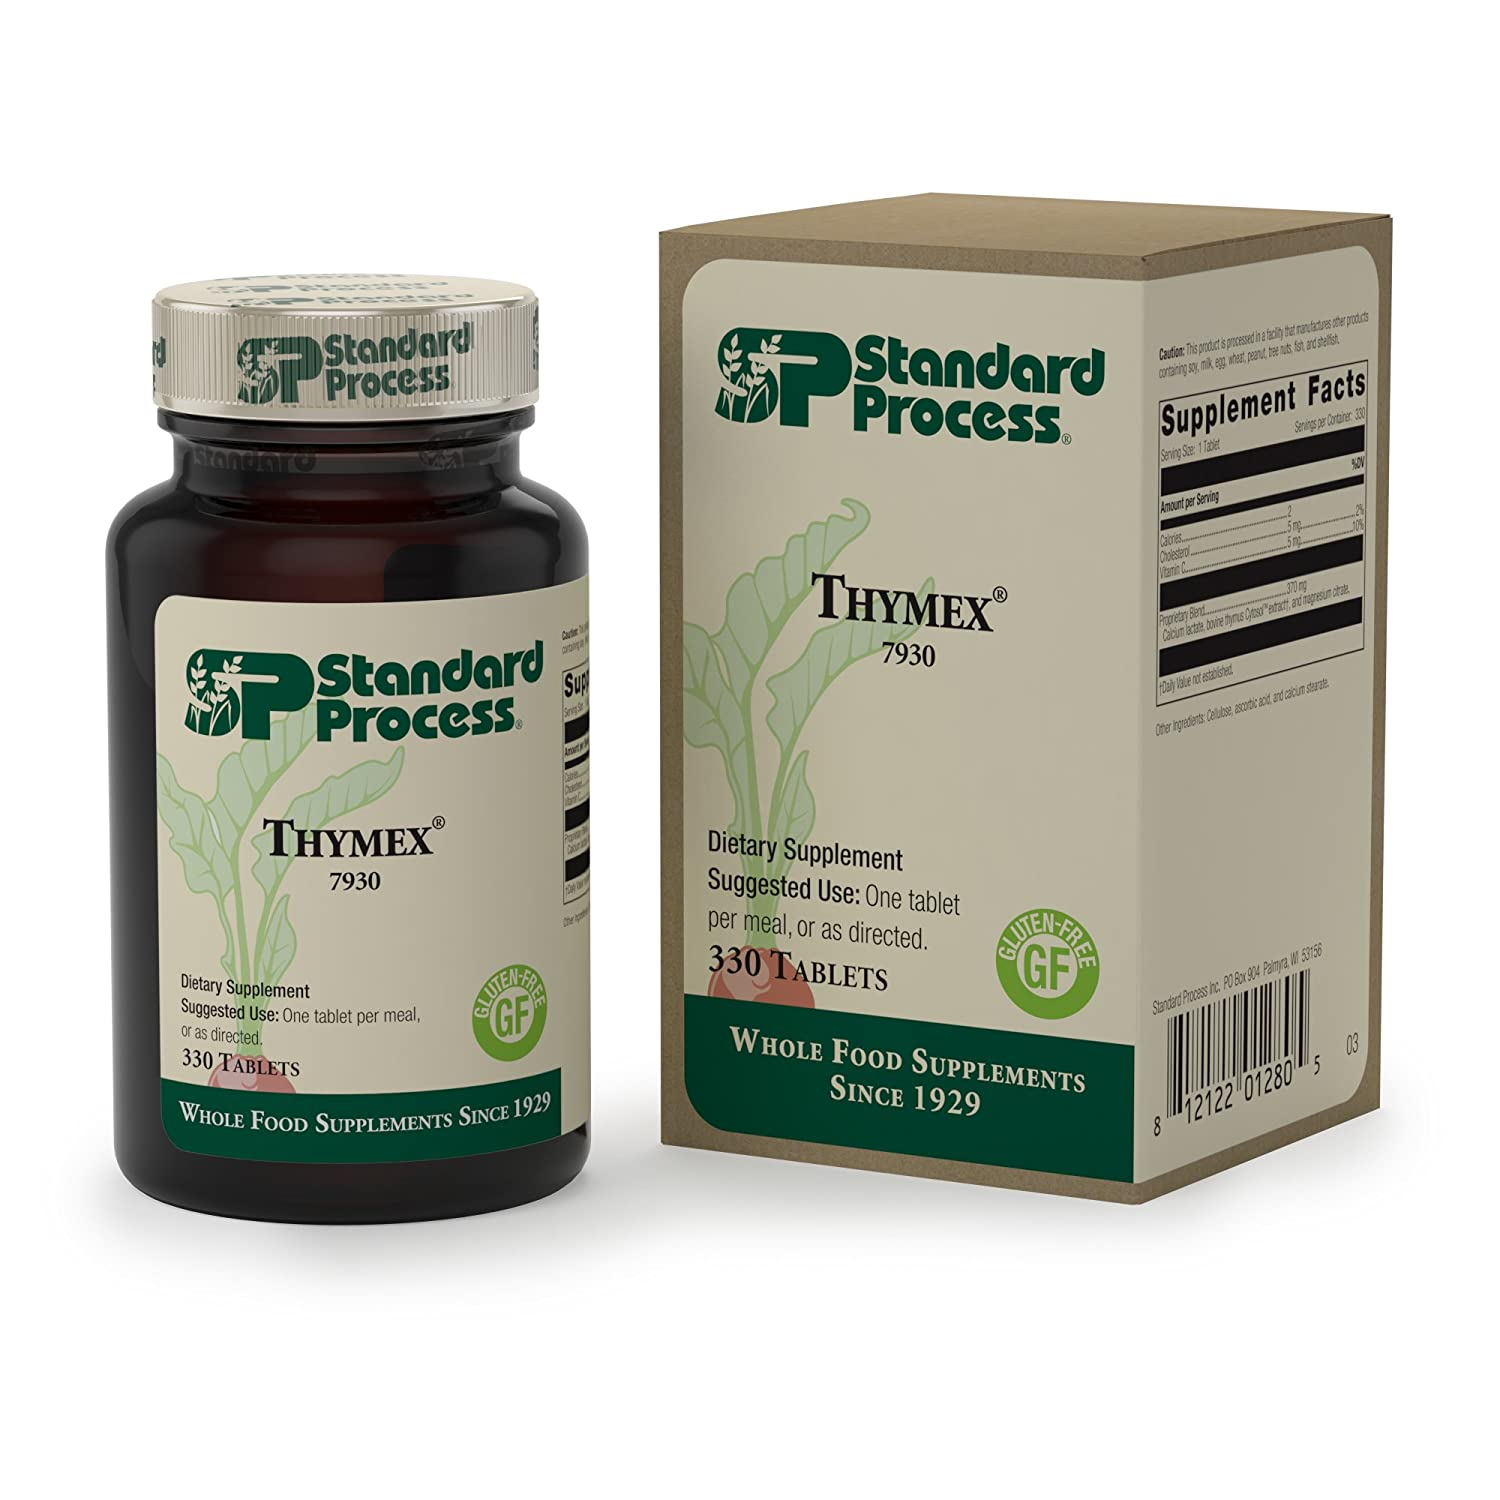 Standard Process – Thymex – Thymus Gland Support Supplement, Supports Immune System Health, Provides Antioxidant Vitamin C, Gluten Free – 330 Tablets